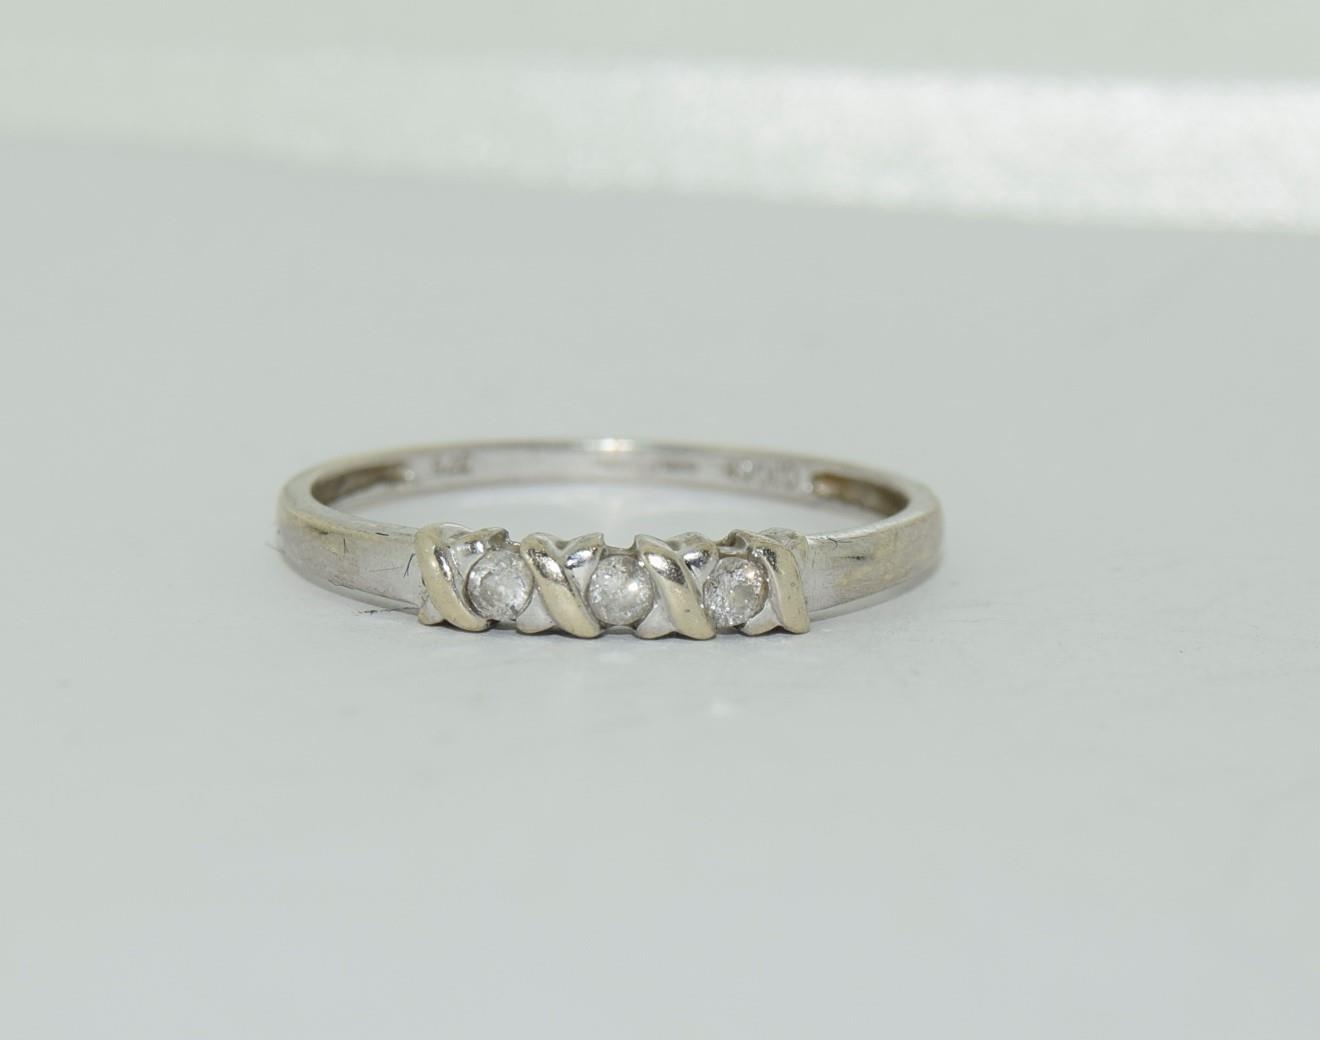 9ct white gold diamond 3 stone ring h/m for 0.1ct size Q - Image 12 of 12